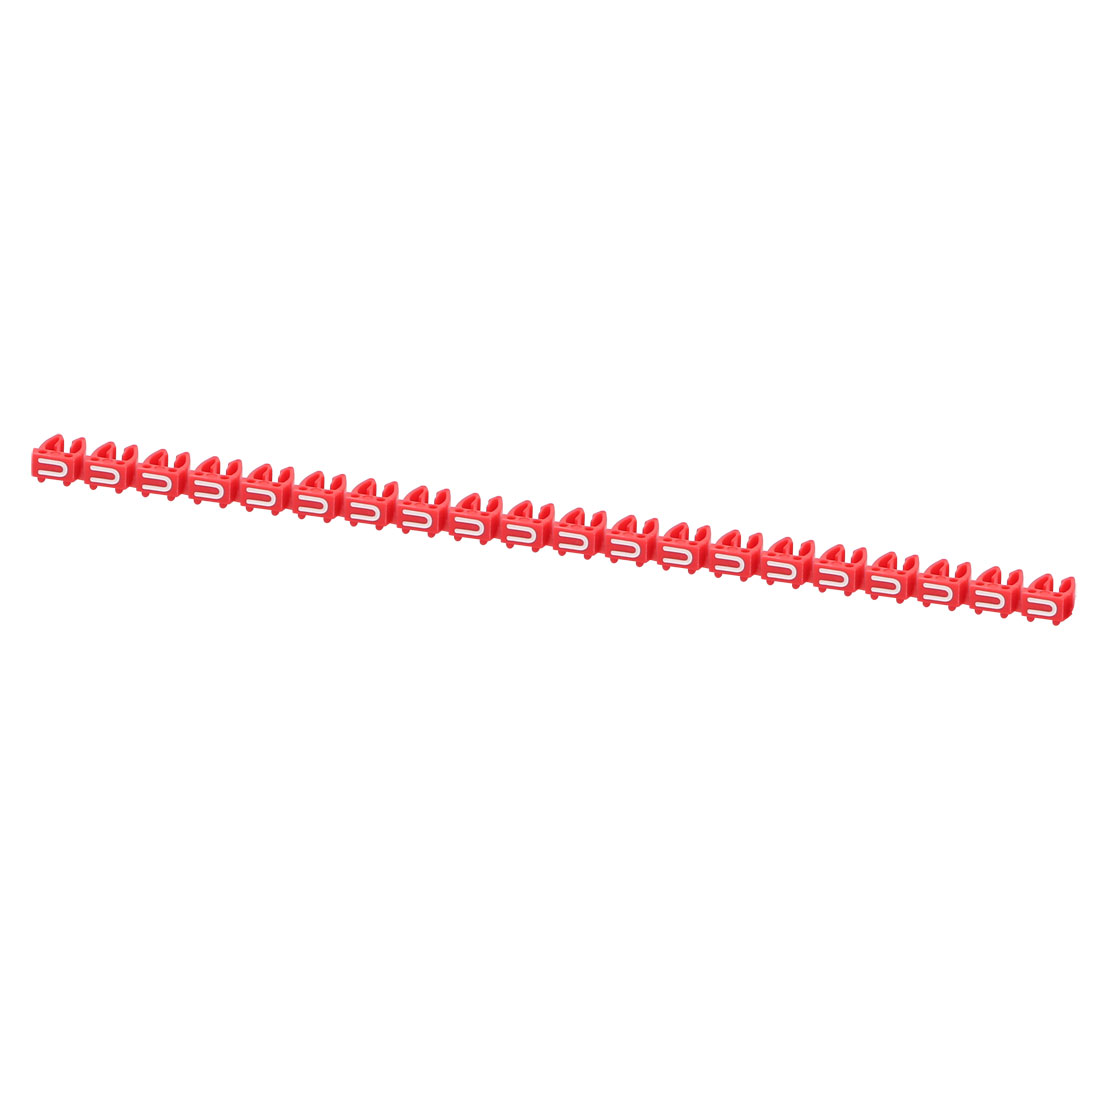 20 Pcs Letters U Network Cable Labels Markers Red for 4.0-6.0mm Dia Cable